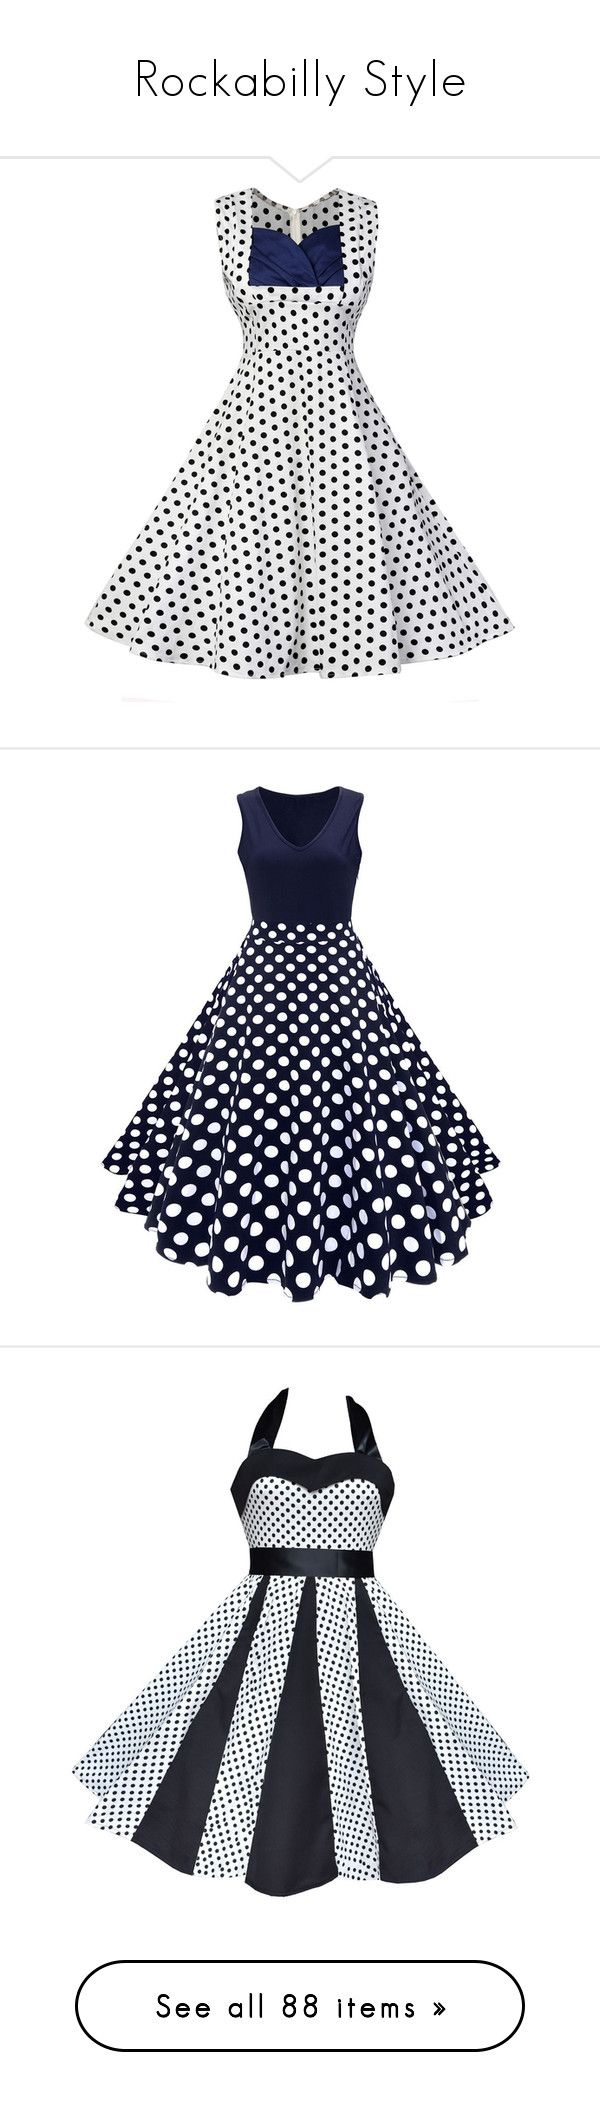 """Rockabilly Style"" by divinespiritcreations ❤ liked on Polyvore featuring dresses, dot dress, spotted dress, vintage day dress, polka dot fit and flare dress, vintage fit and flare dresses, v-neck dresses, blue skater dress, party dresses and night out dresses"